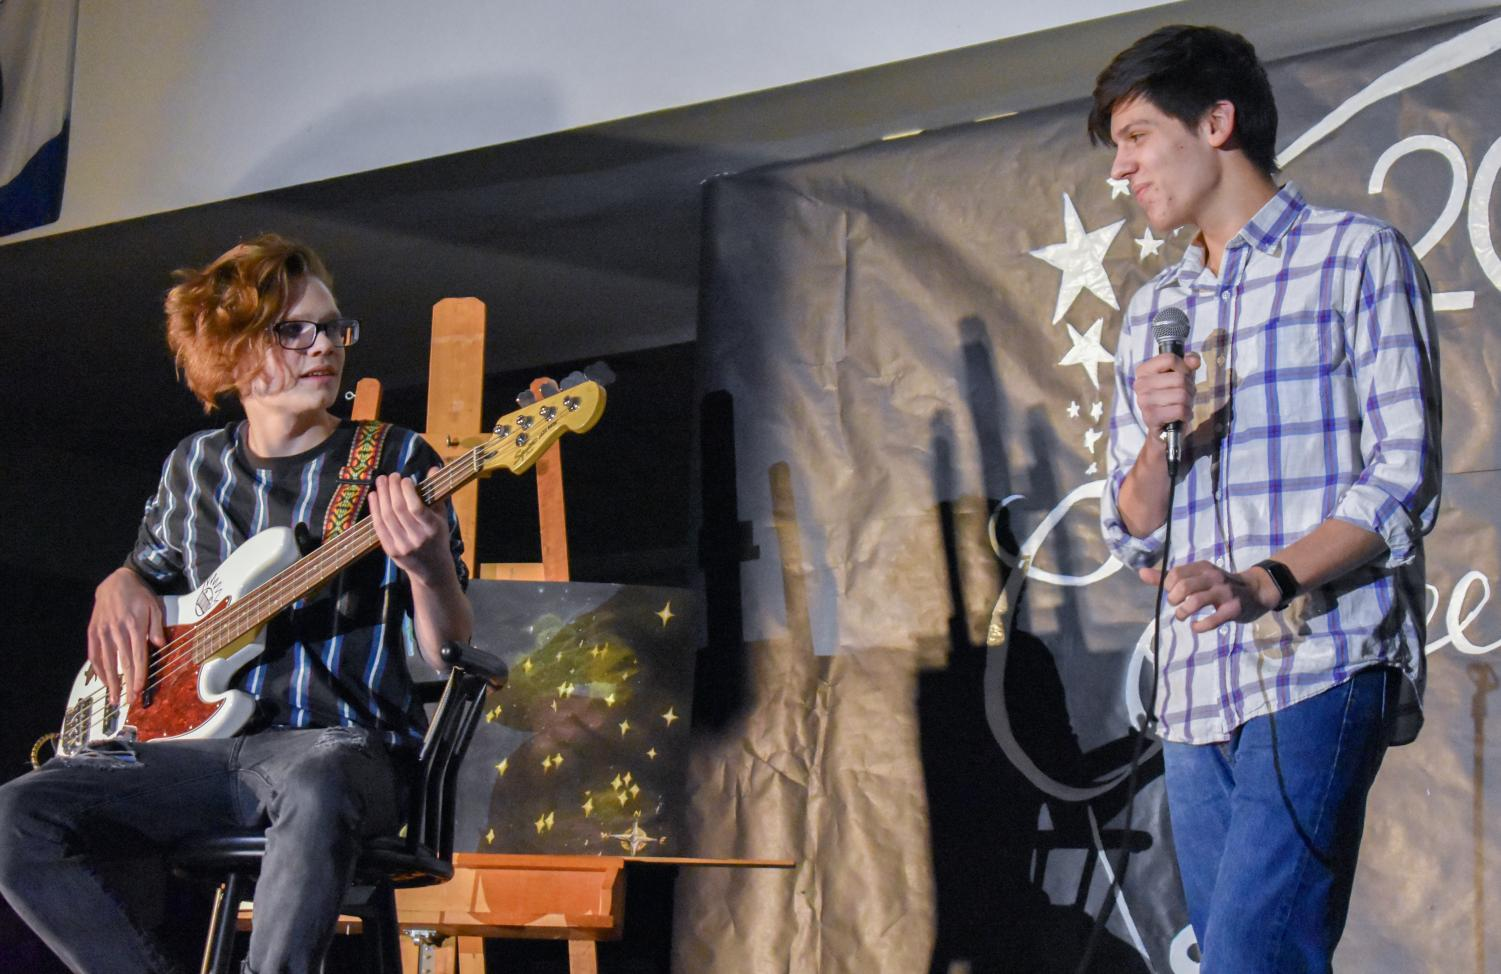 Seniors Michael Landolfi of Tinton Falls and Dane Tedder of Ocean perform at Coffeehouse.